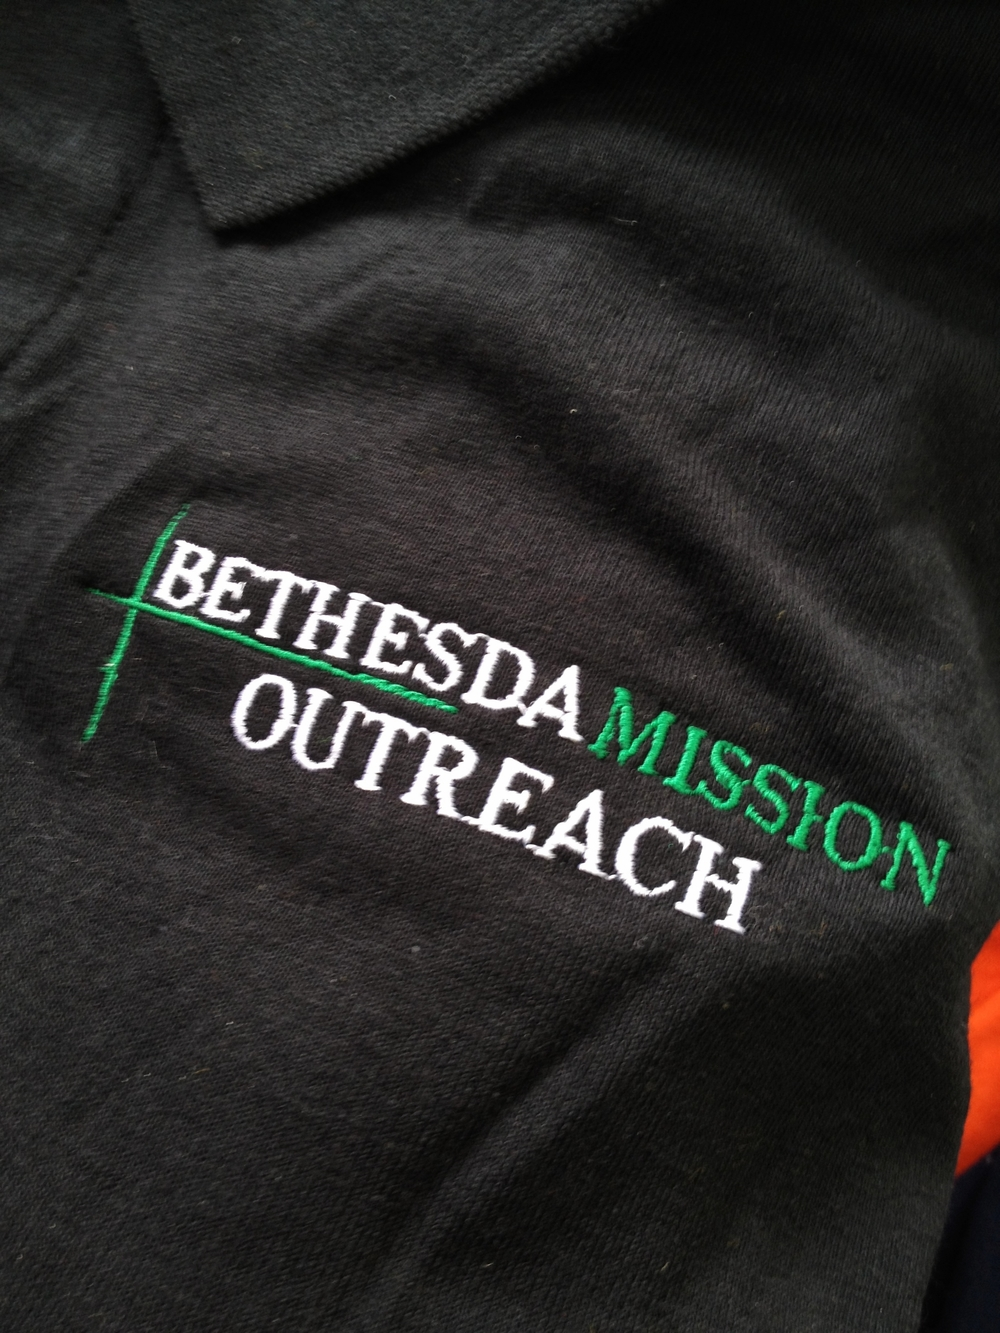 Embroidery | Bethesda Mission Outreach Shirt | Harrisburg, PA